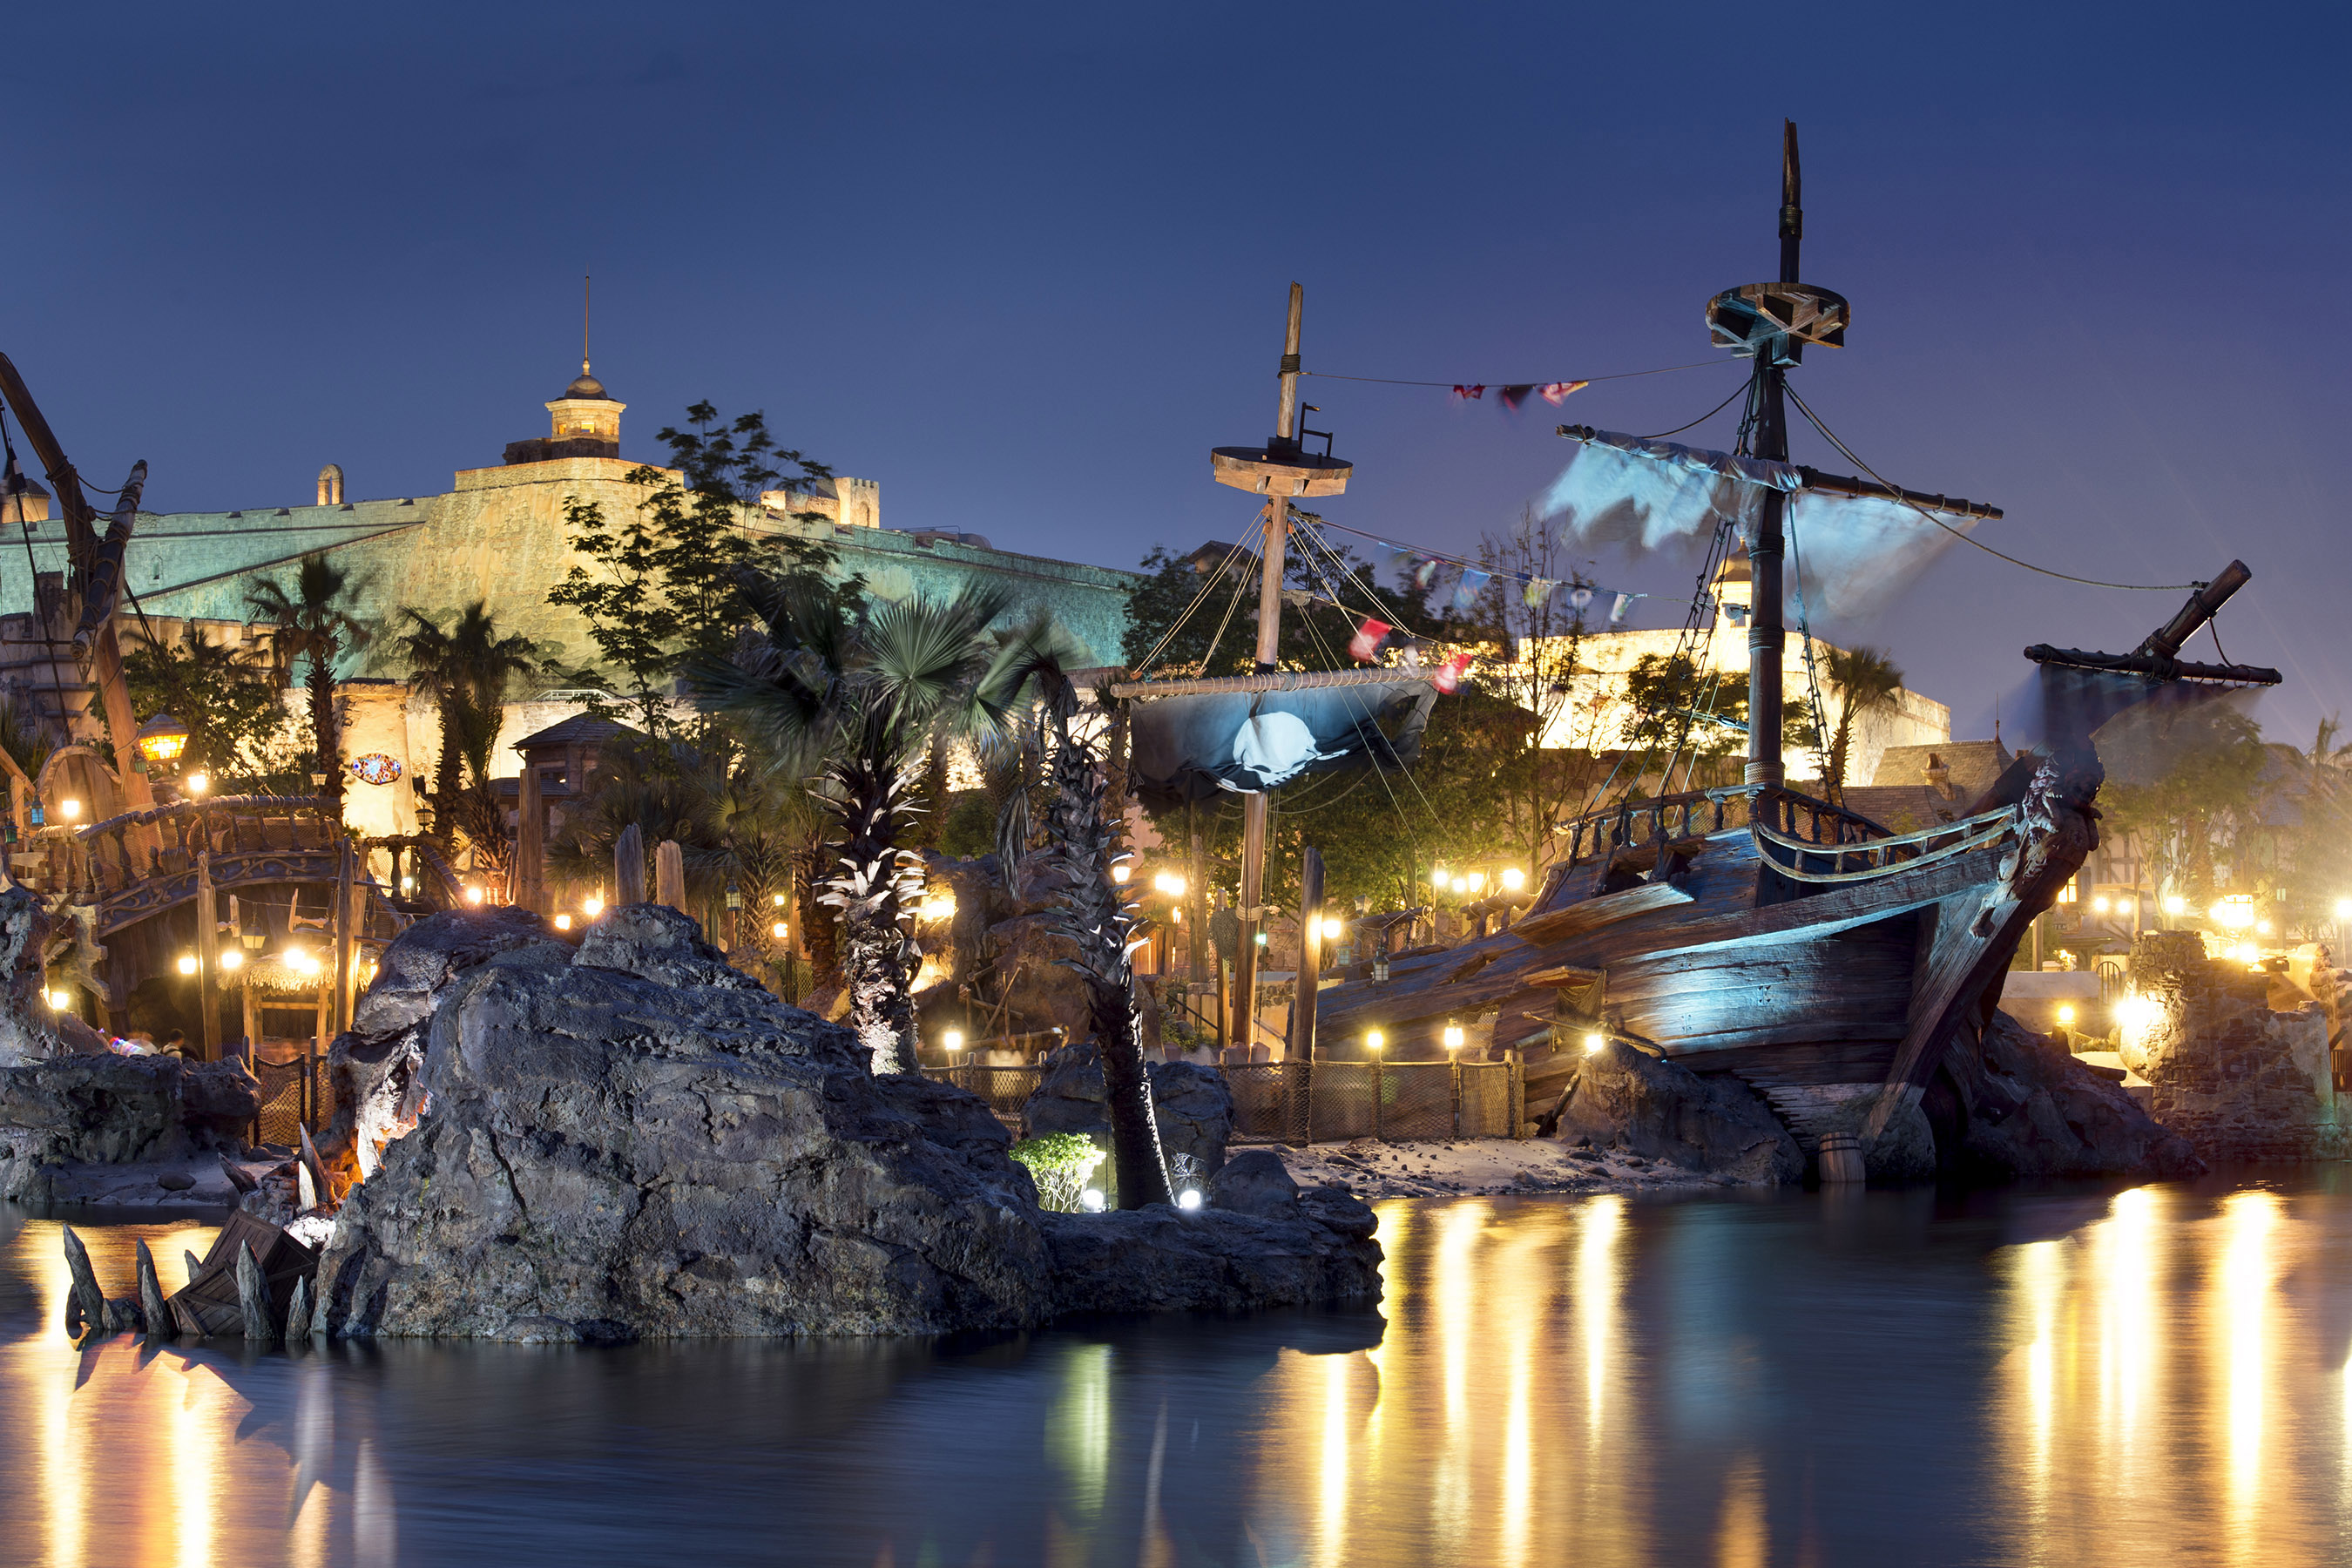 Guests can venture into Treasure Cove, the first pirate-themed land at a Disney Park, located at Shanghai Disneyland. Through rich storytelling and detailing, Treasure Cove brings to life the Age of Piracy, blending cultures with pirate fun and mayhem. Guests of all ages can enjoy epic scenes throughout the land that showcase up-close action and acrobatics. (Kent Phillips, photographer)